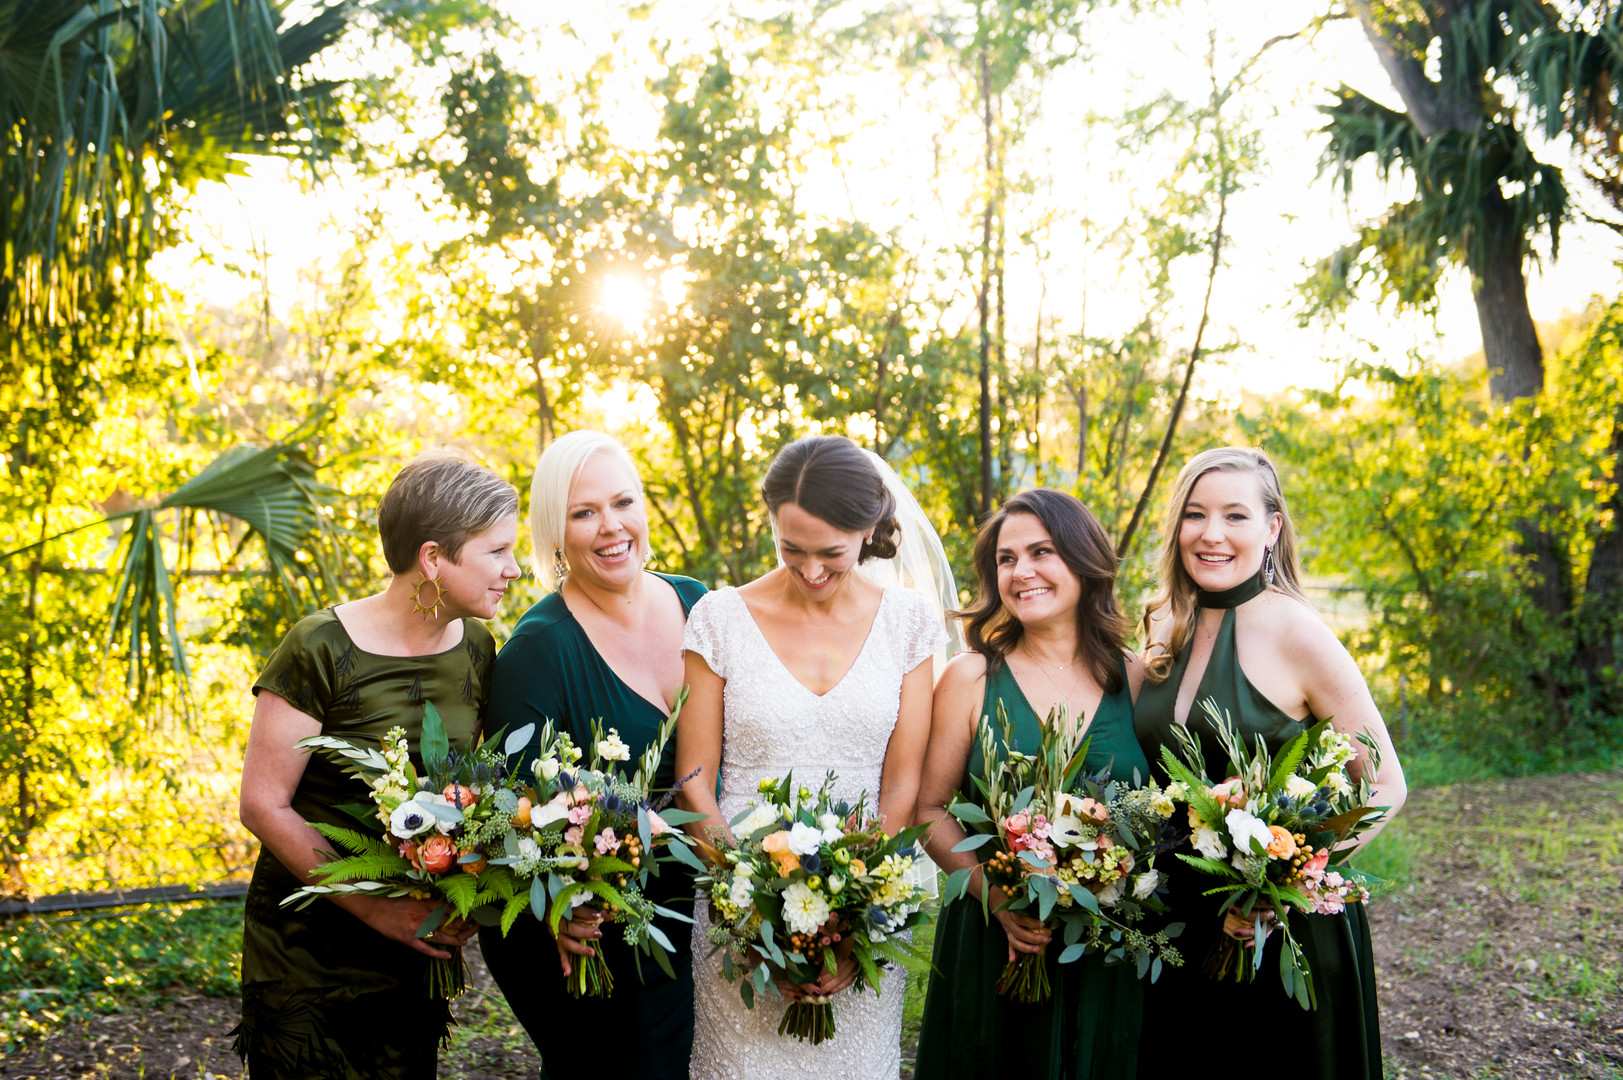 Green bridesmaid dresses and bouquets